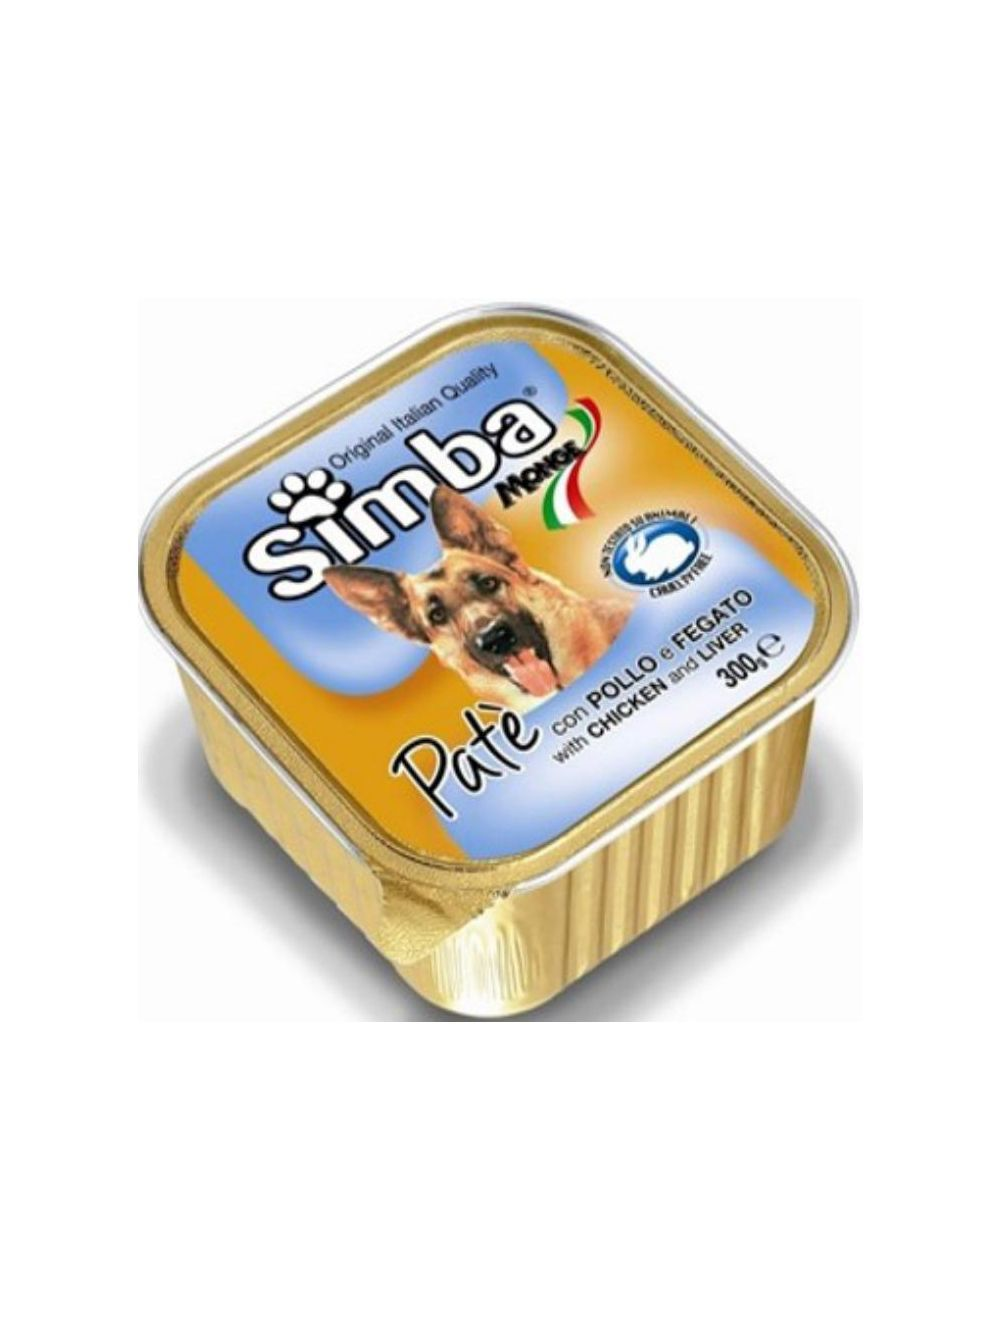 Simba Dog x 150 g Pate With Chicken and Liver